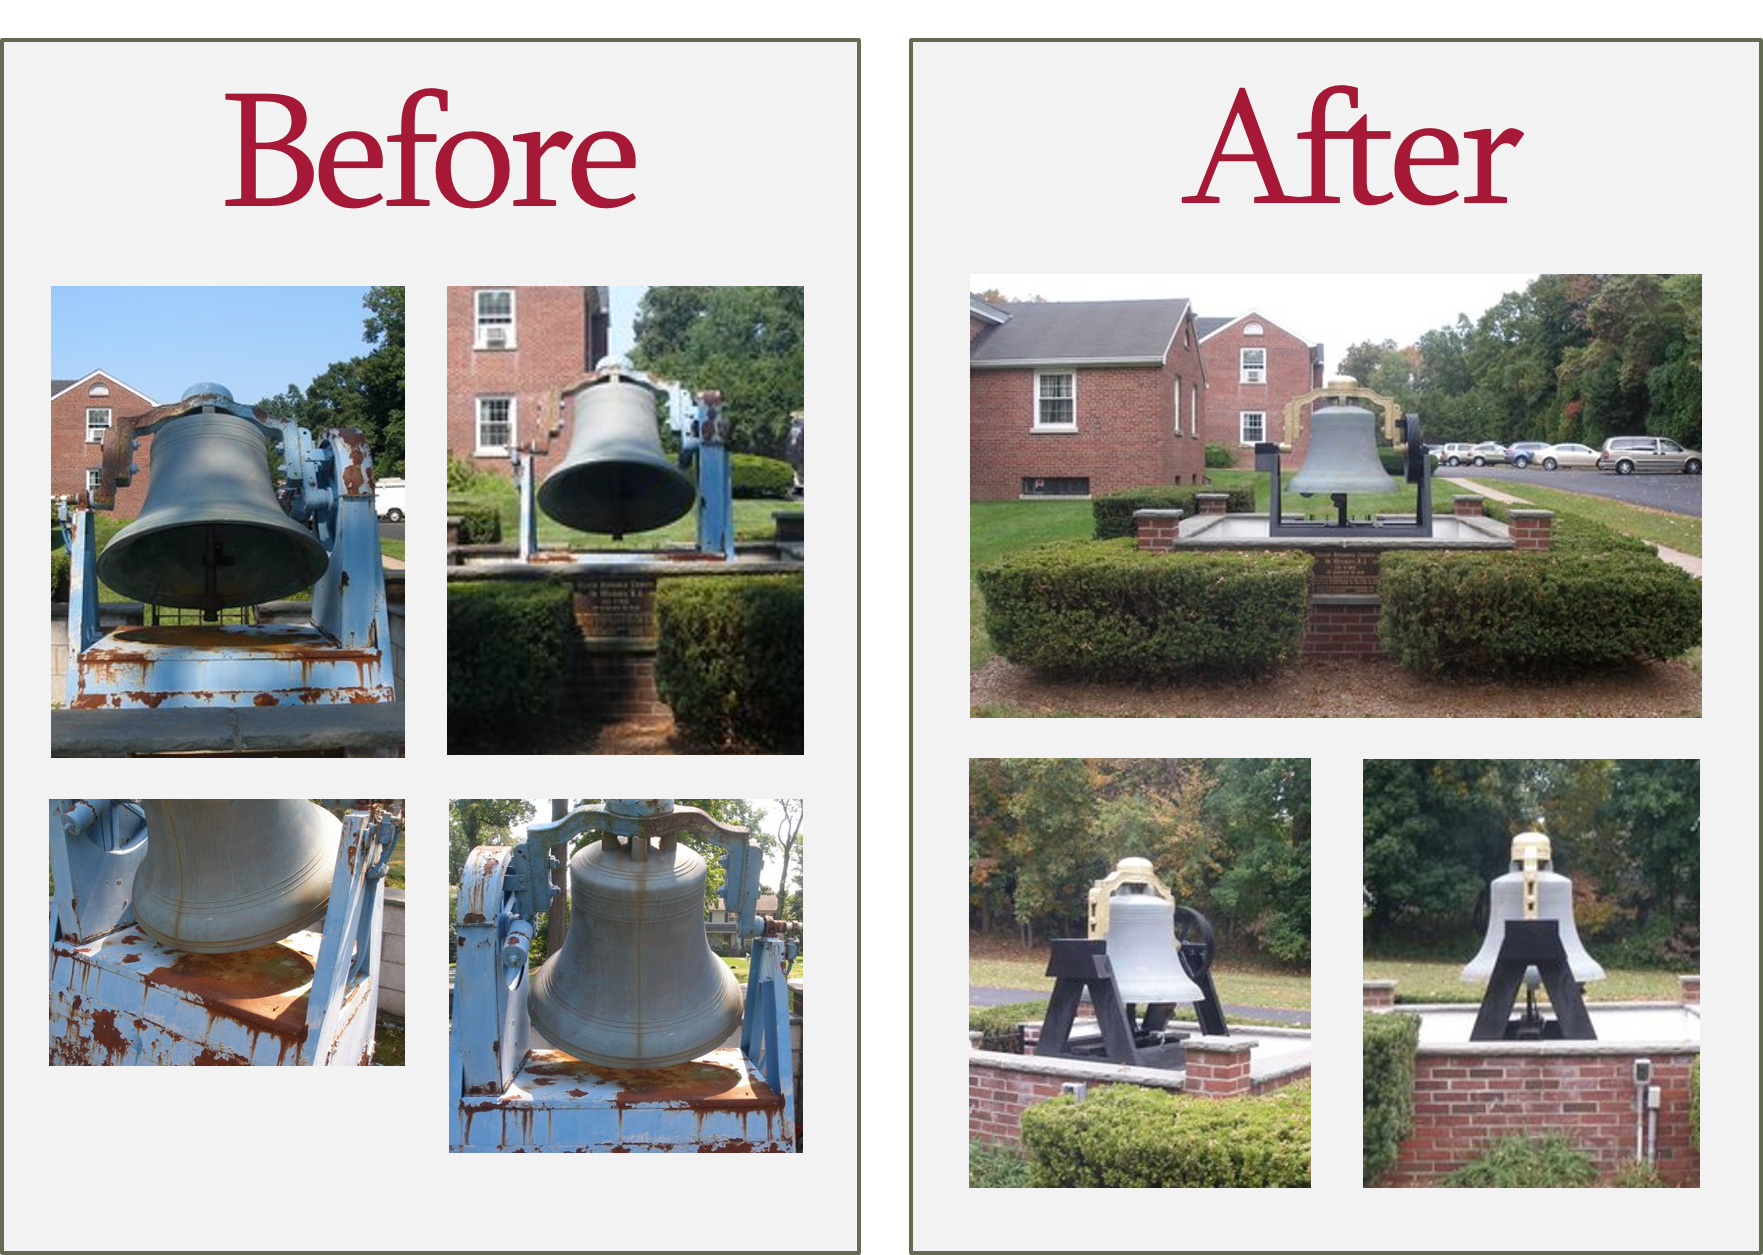 wyckoff_before_after